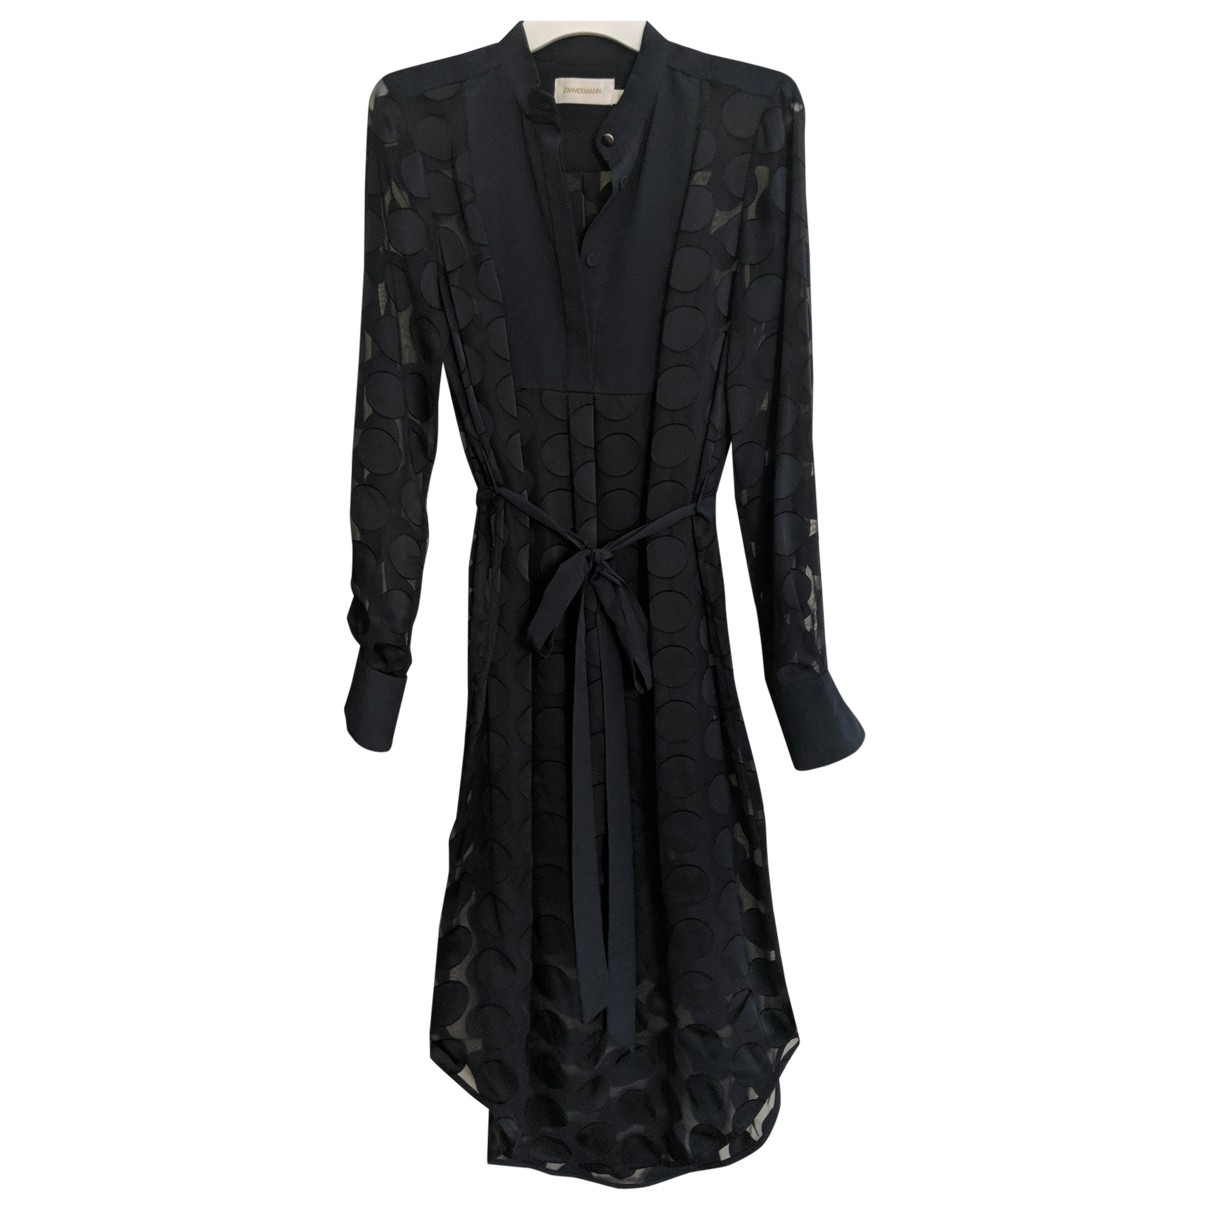 Zimmermann \N Navy dress for Women 000 0-5